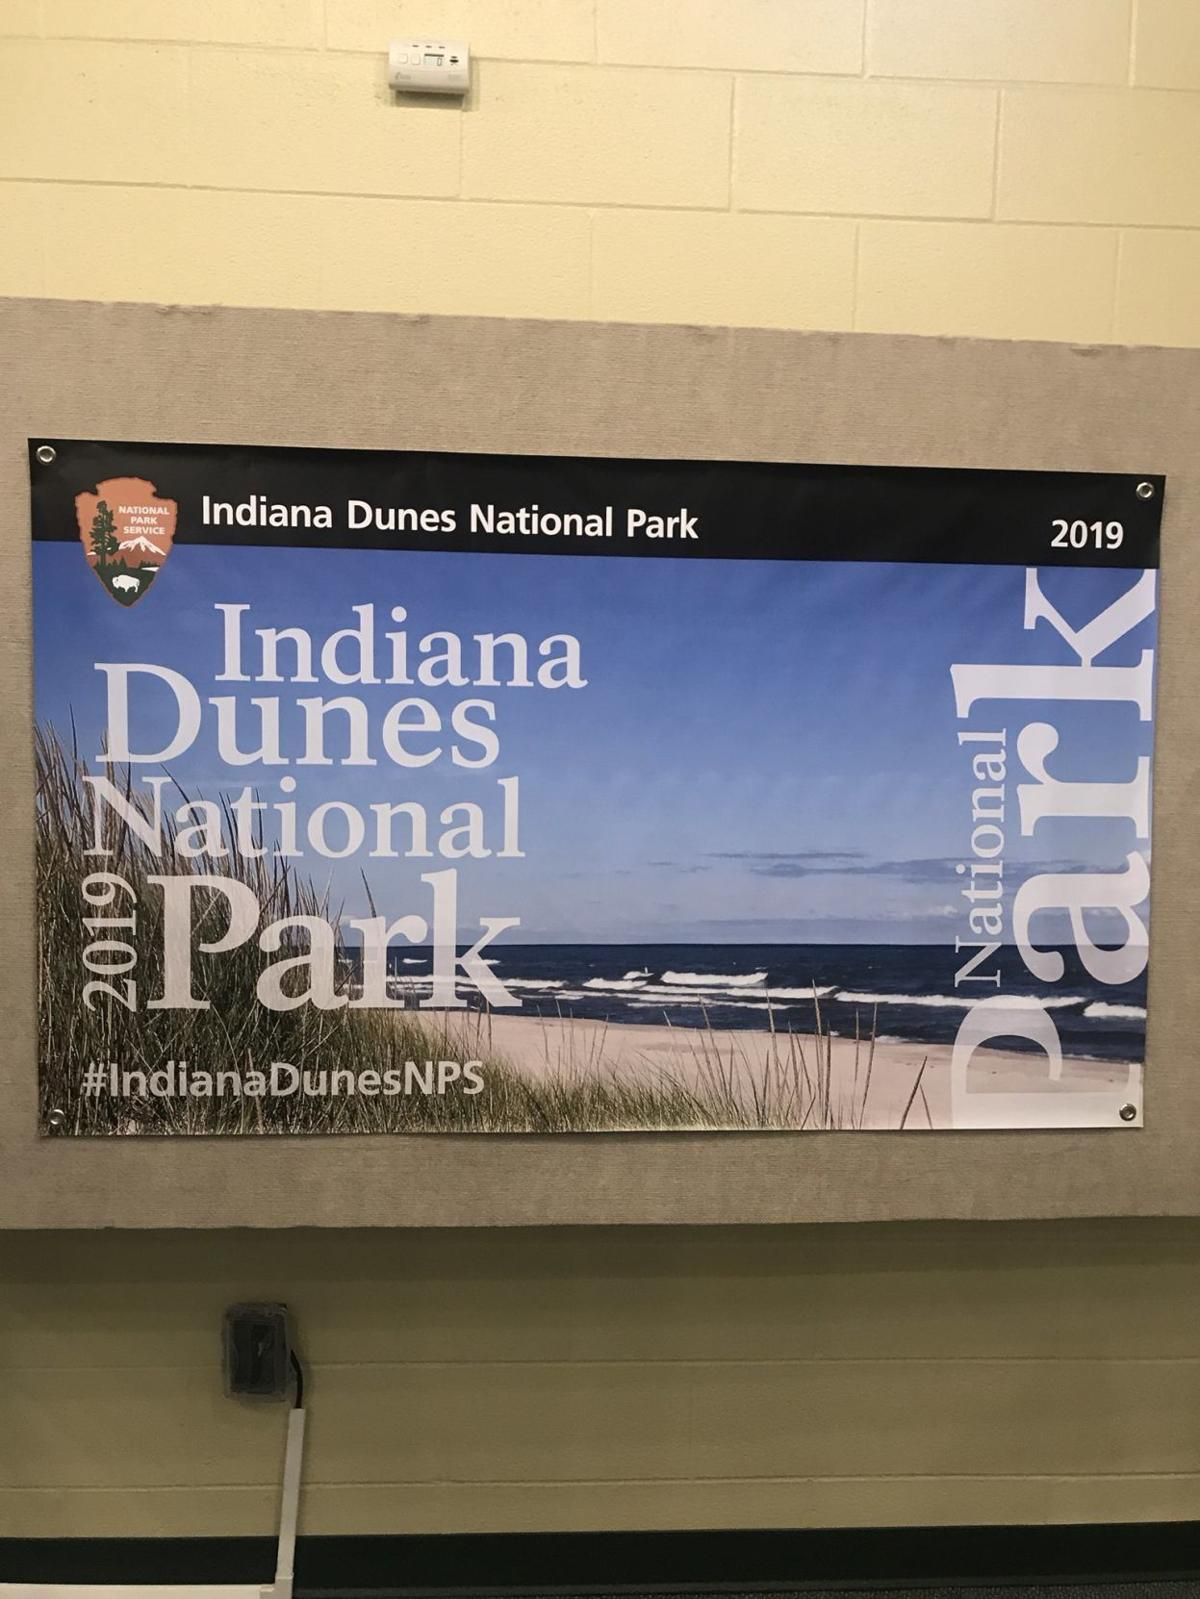 Portage looks to economic, cultural benefits from the Dunes becoming Indiana's first national park